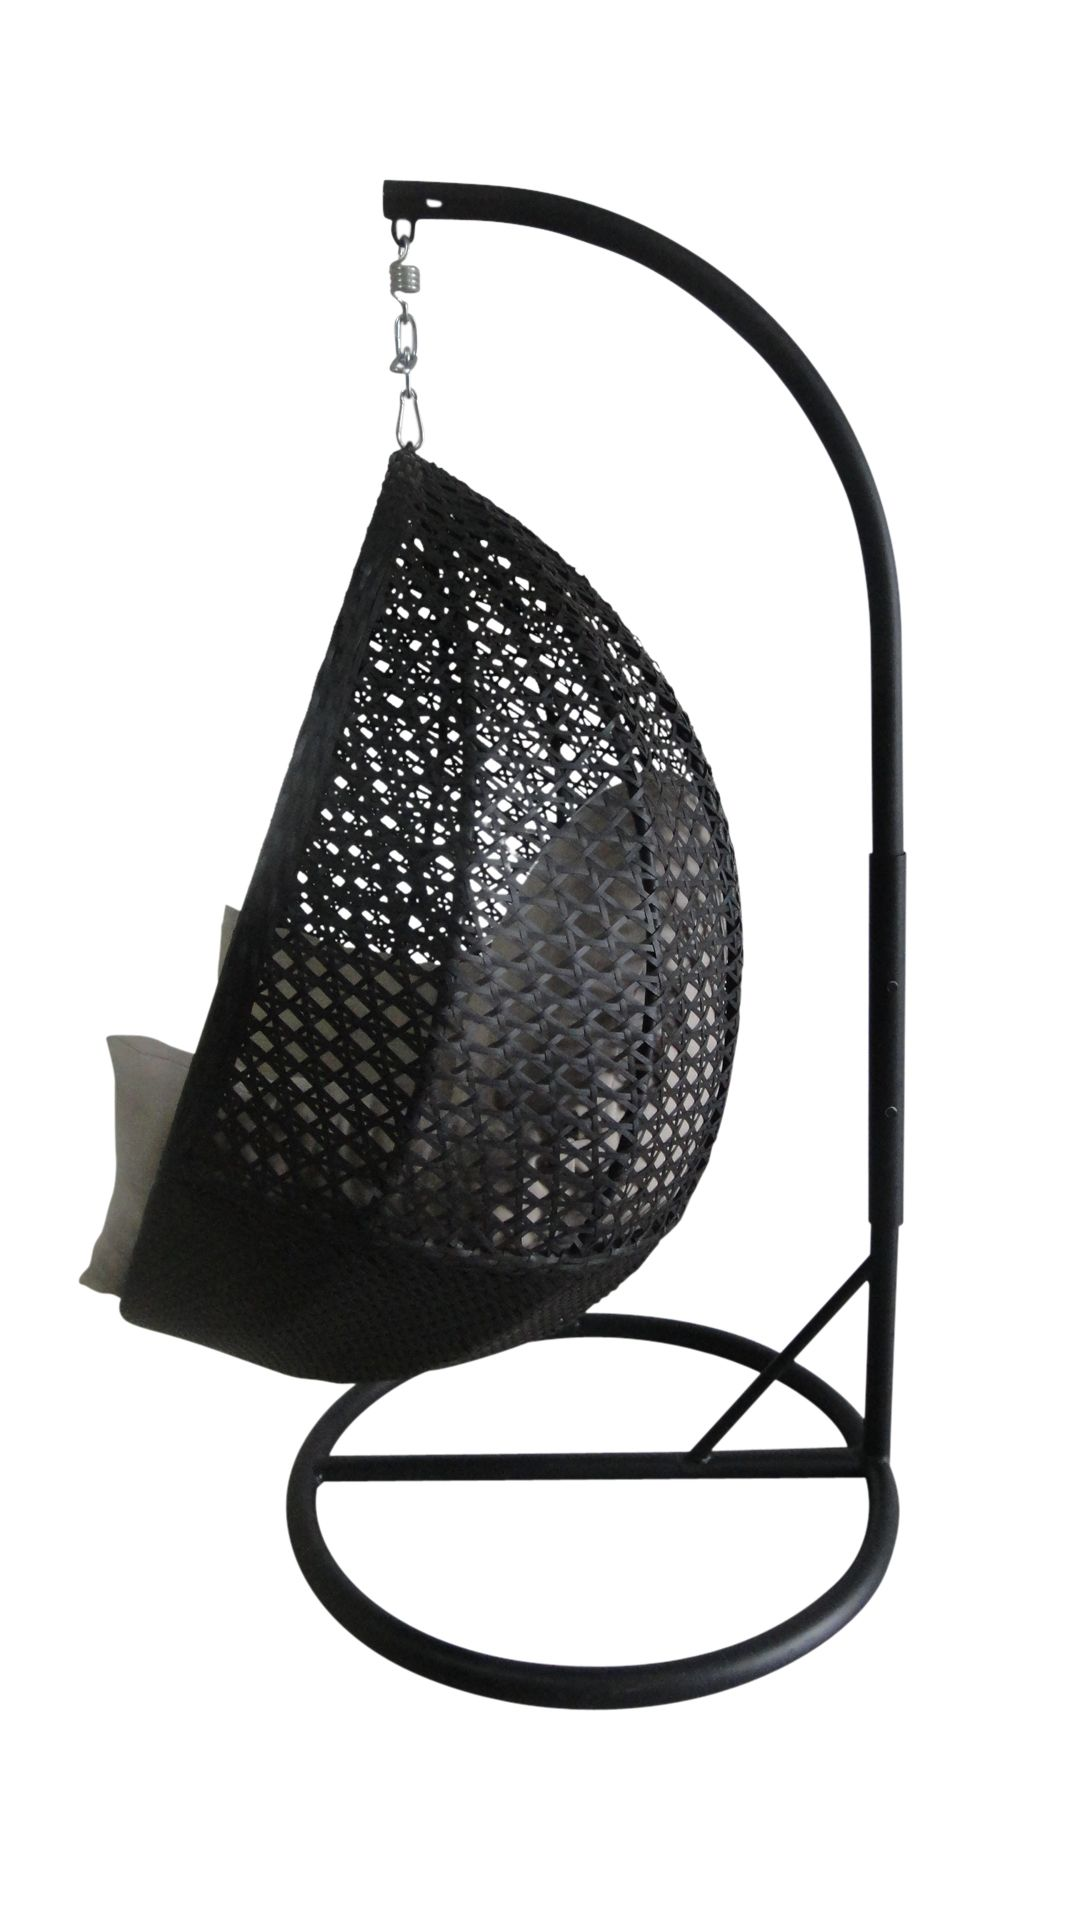 Appealing hanging egg chair in black with black iron base